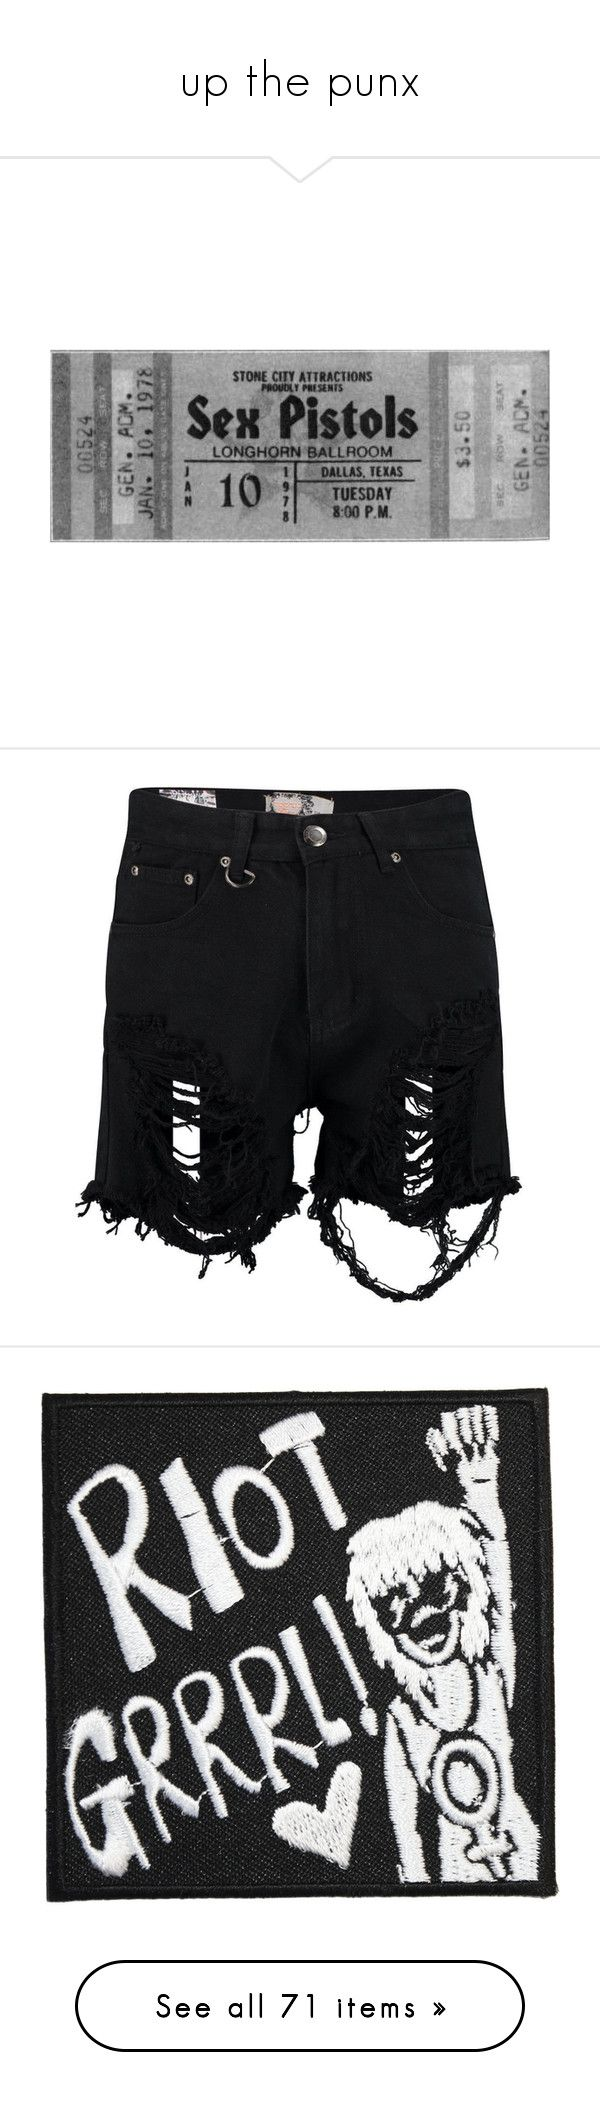 """""""up the punx"""" by pythoness ❤ liked on Polyvore featuring fillers, music, tickets, accessories, backgrounds, shorts, bottoms, short, destroyed denim shorts and high waisted ripped shorts"""